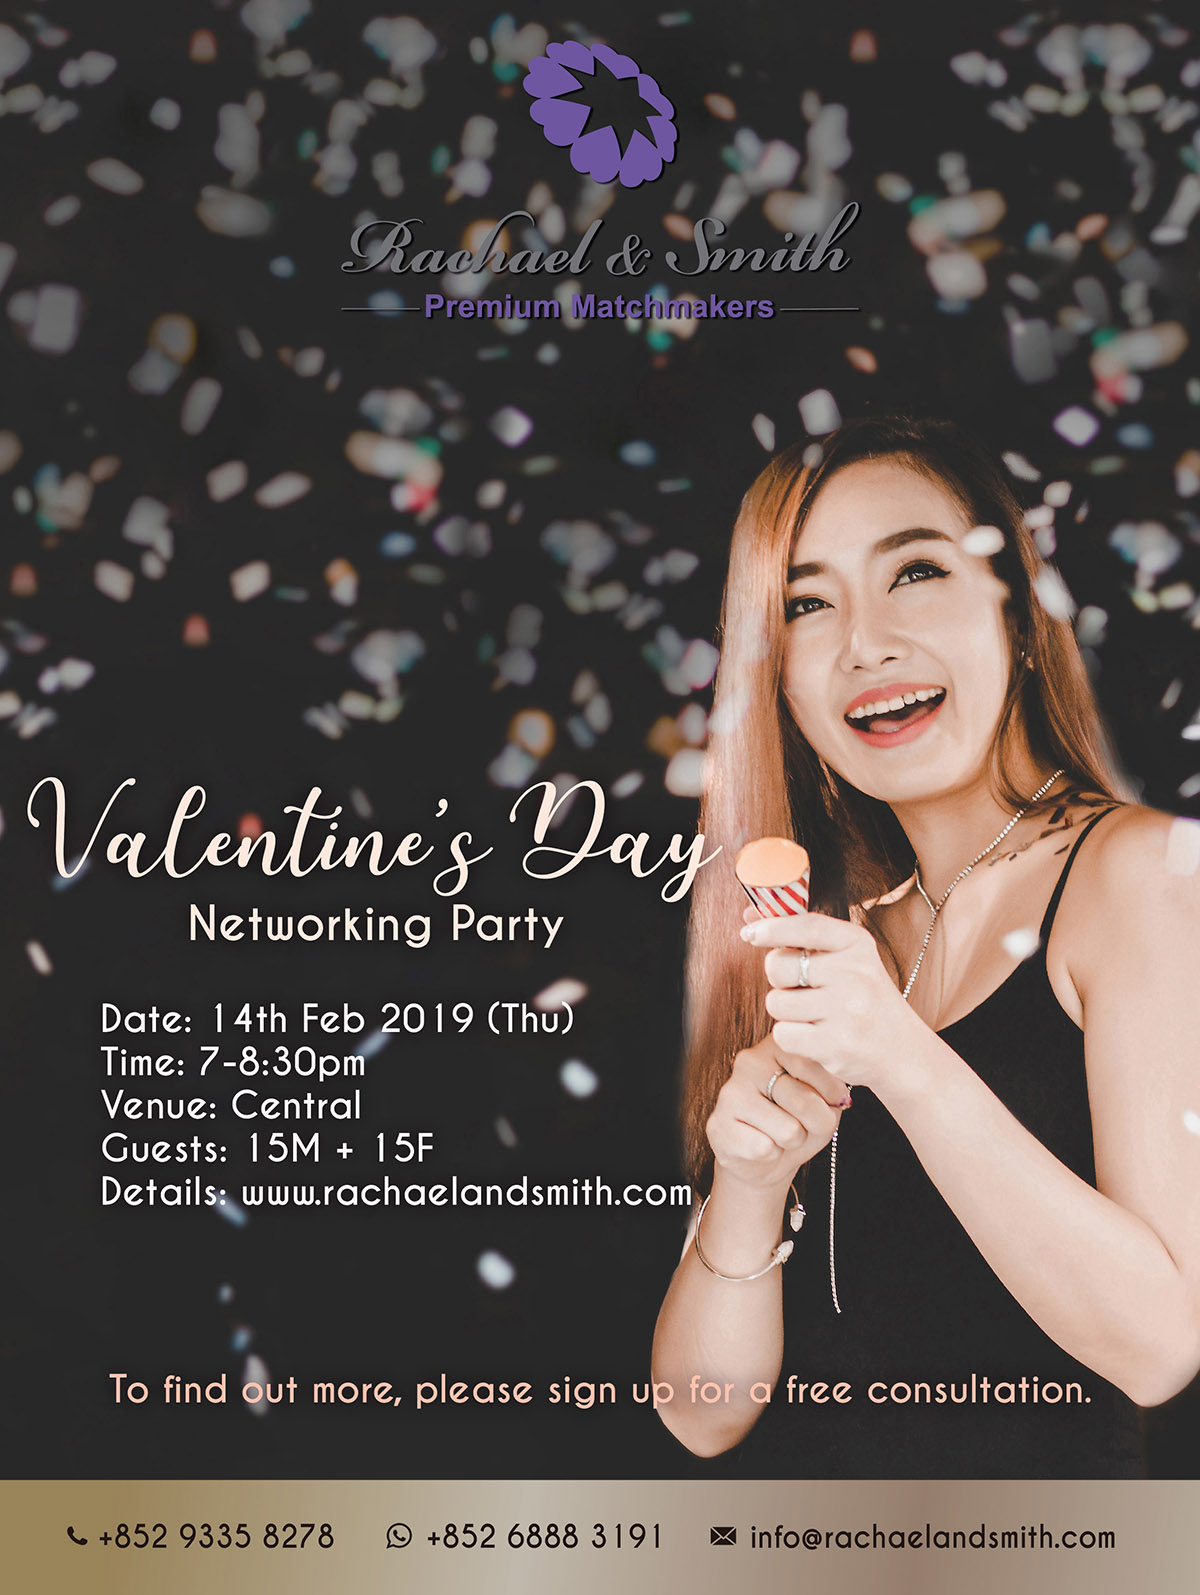 Rachael & Smith, Premium Matchmakers, Networking, Party, Valentine's Day